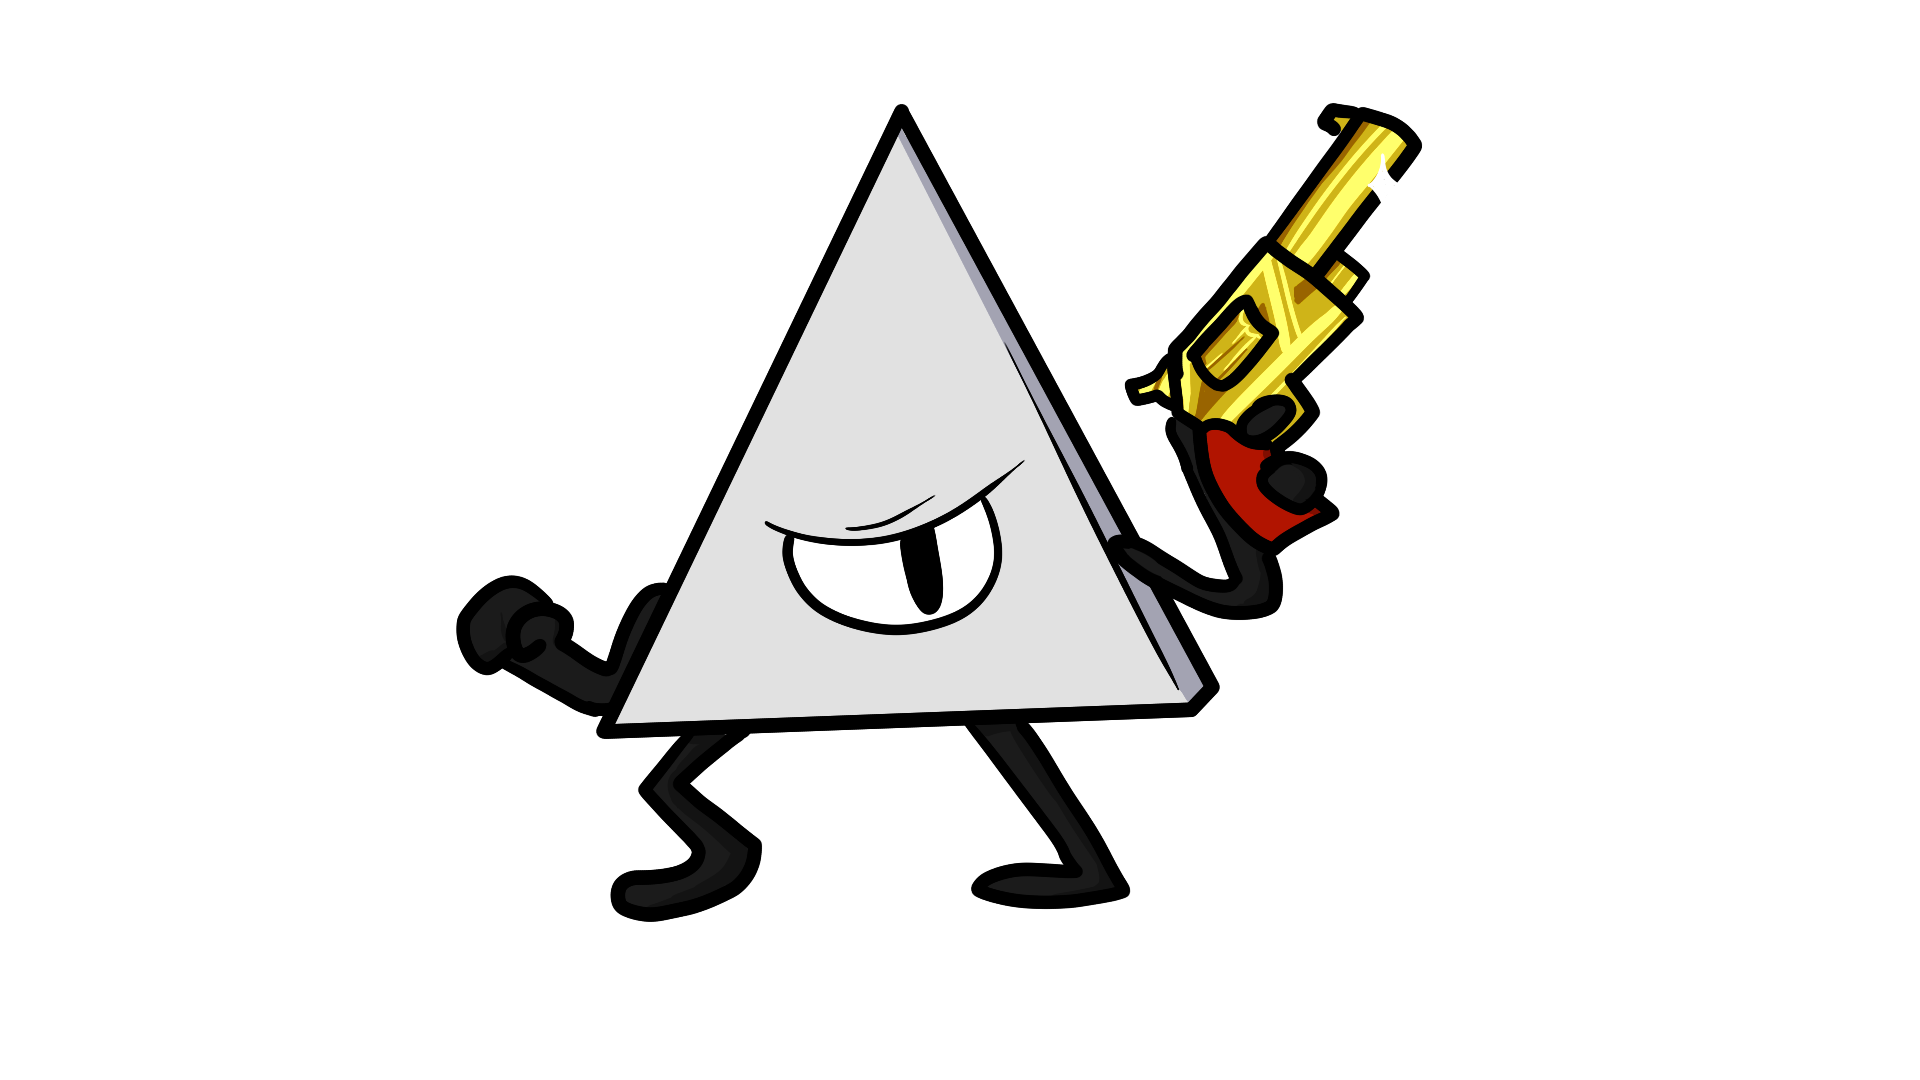 Shell clipart triangle object. Image yv png nuclear